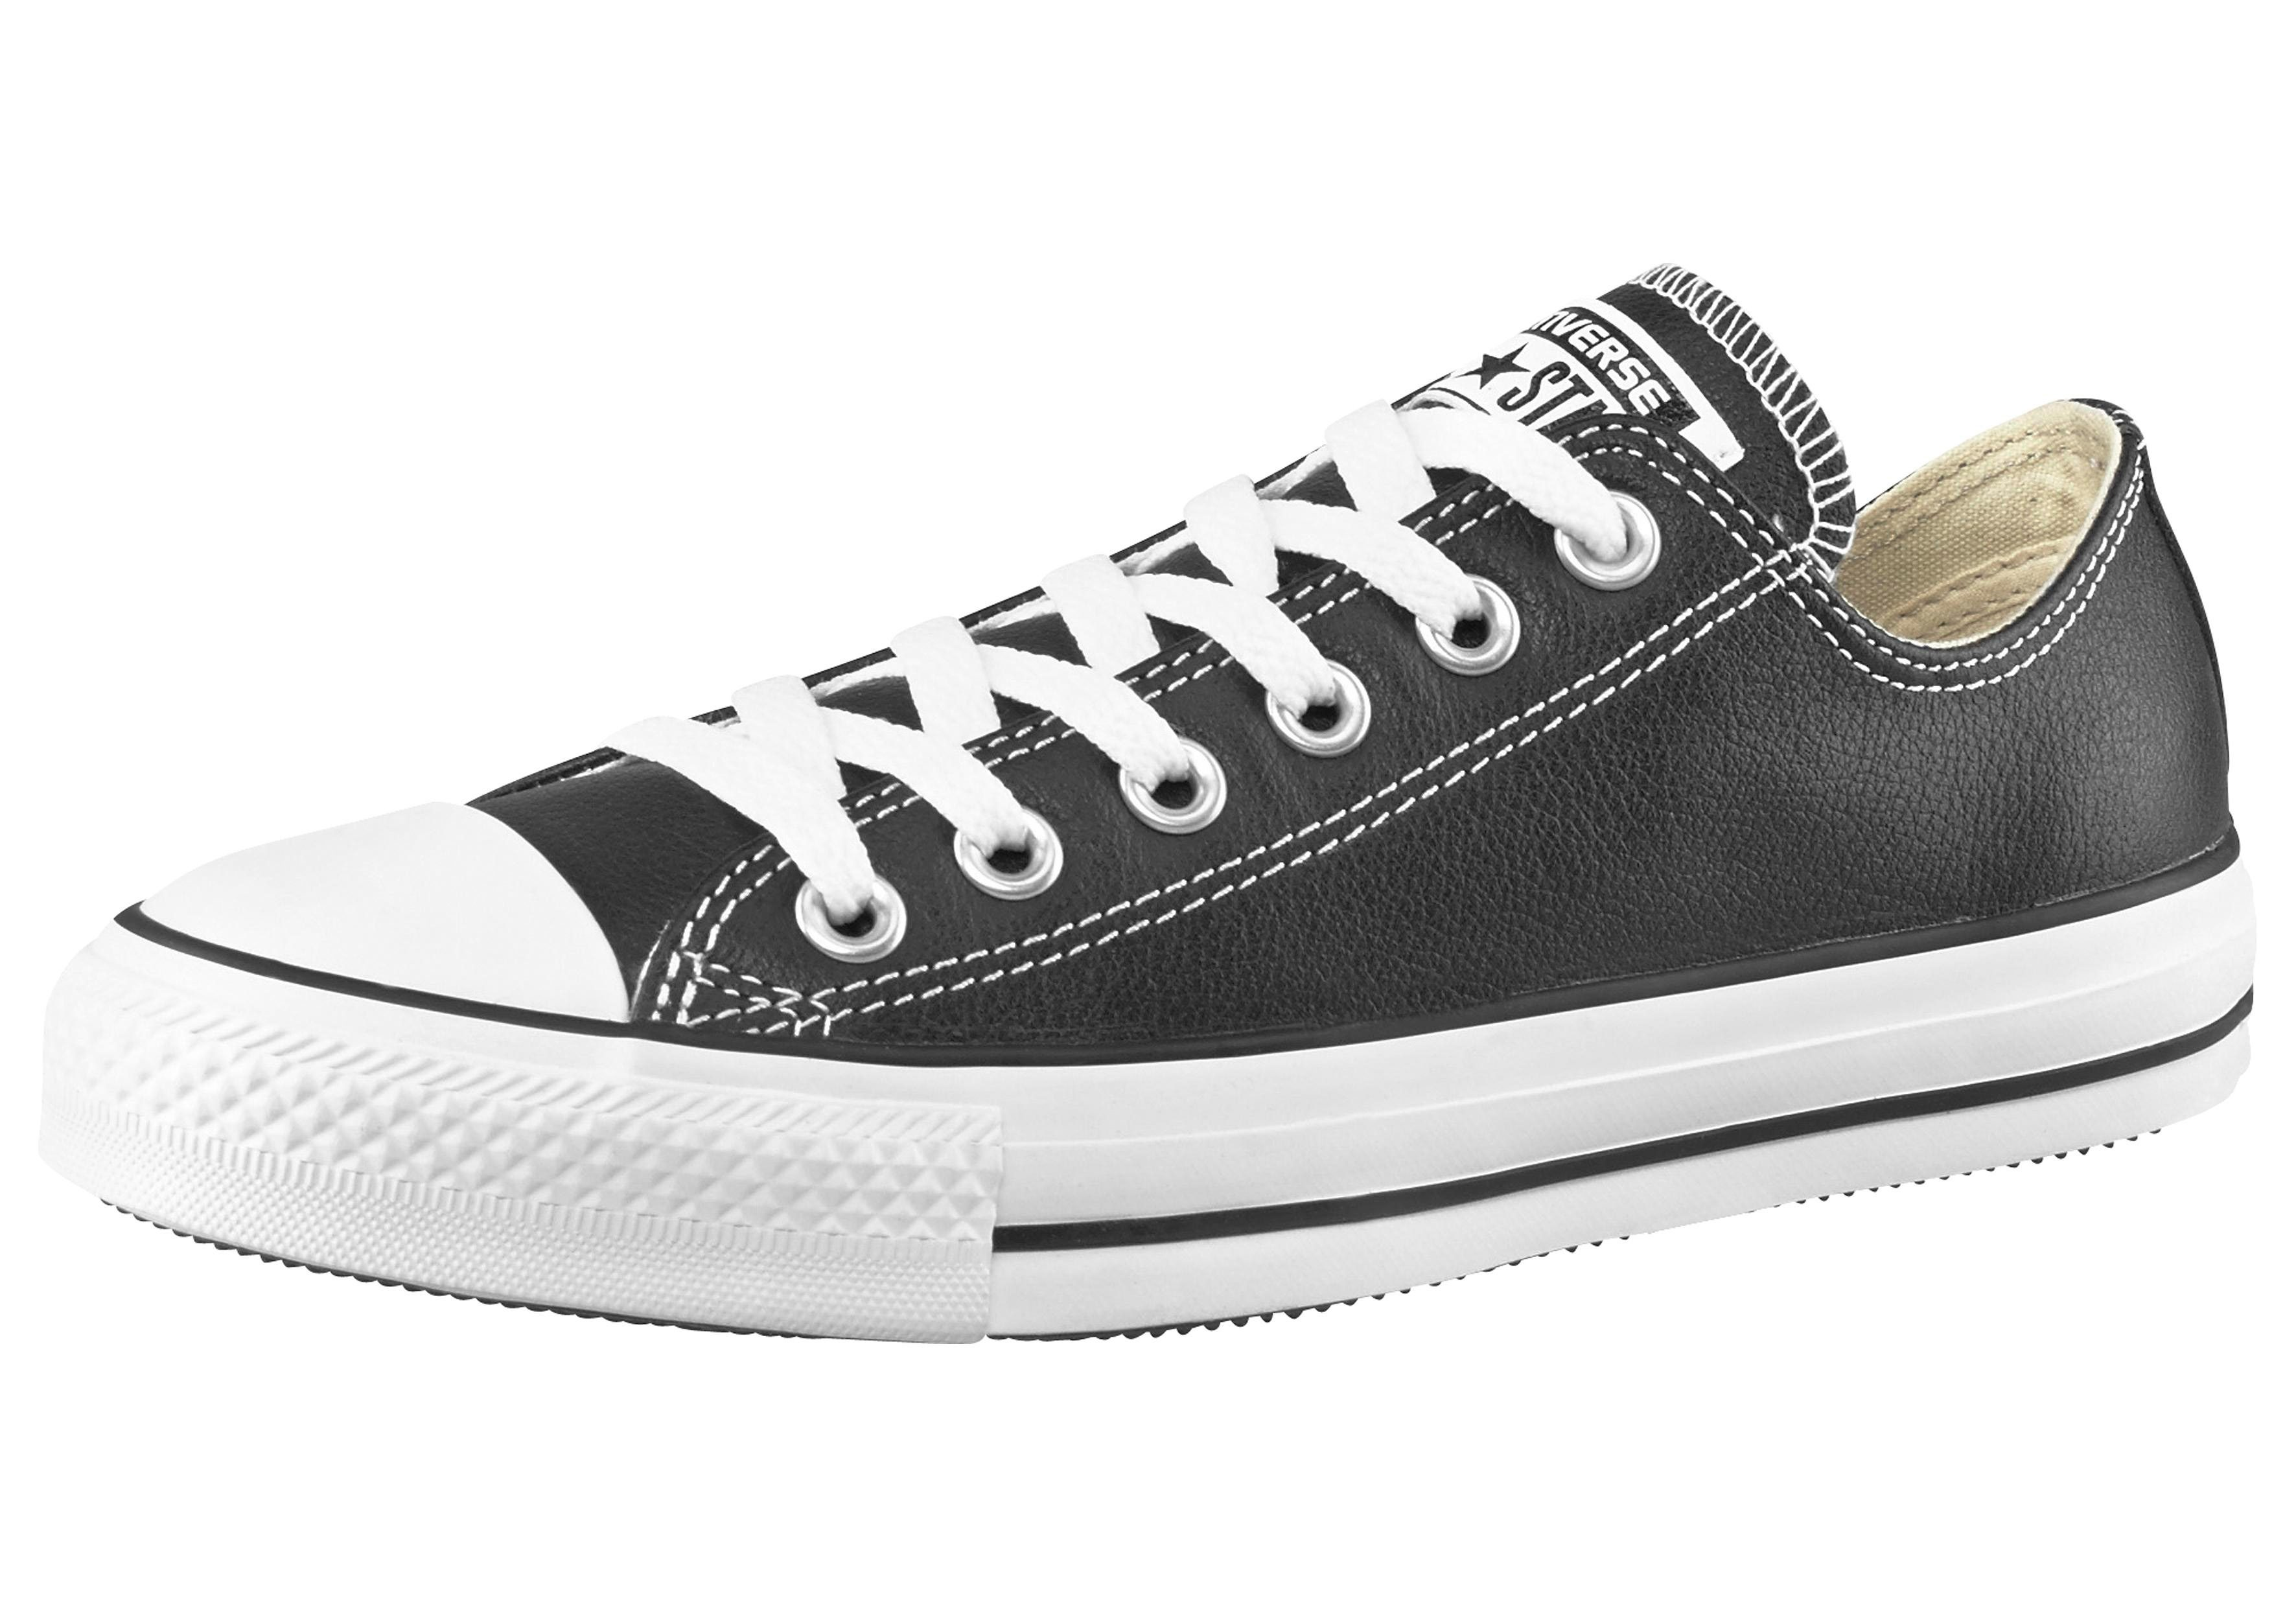 Converse »Chuck Taylor All Star Basic Leather Ox« Sneaker online kaufen | OTTO